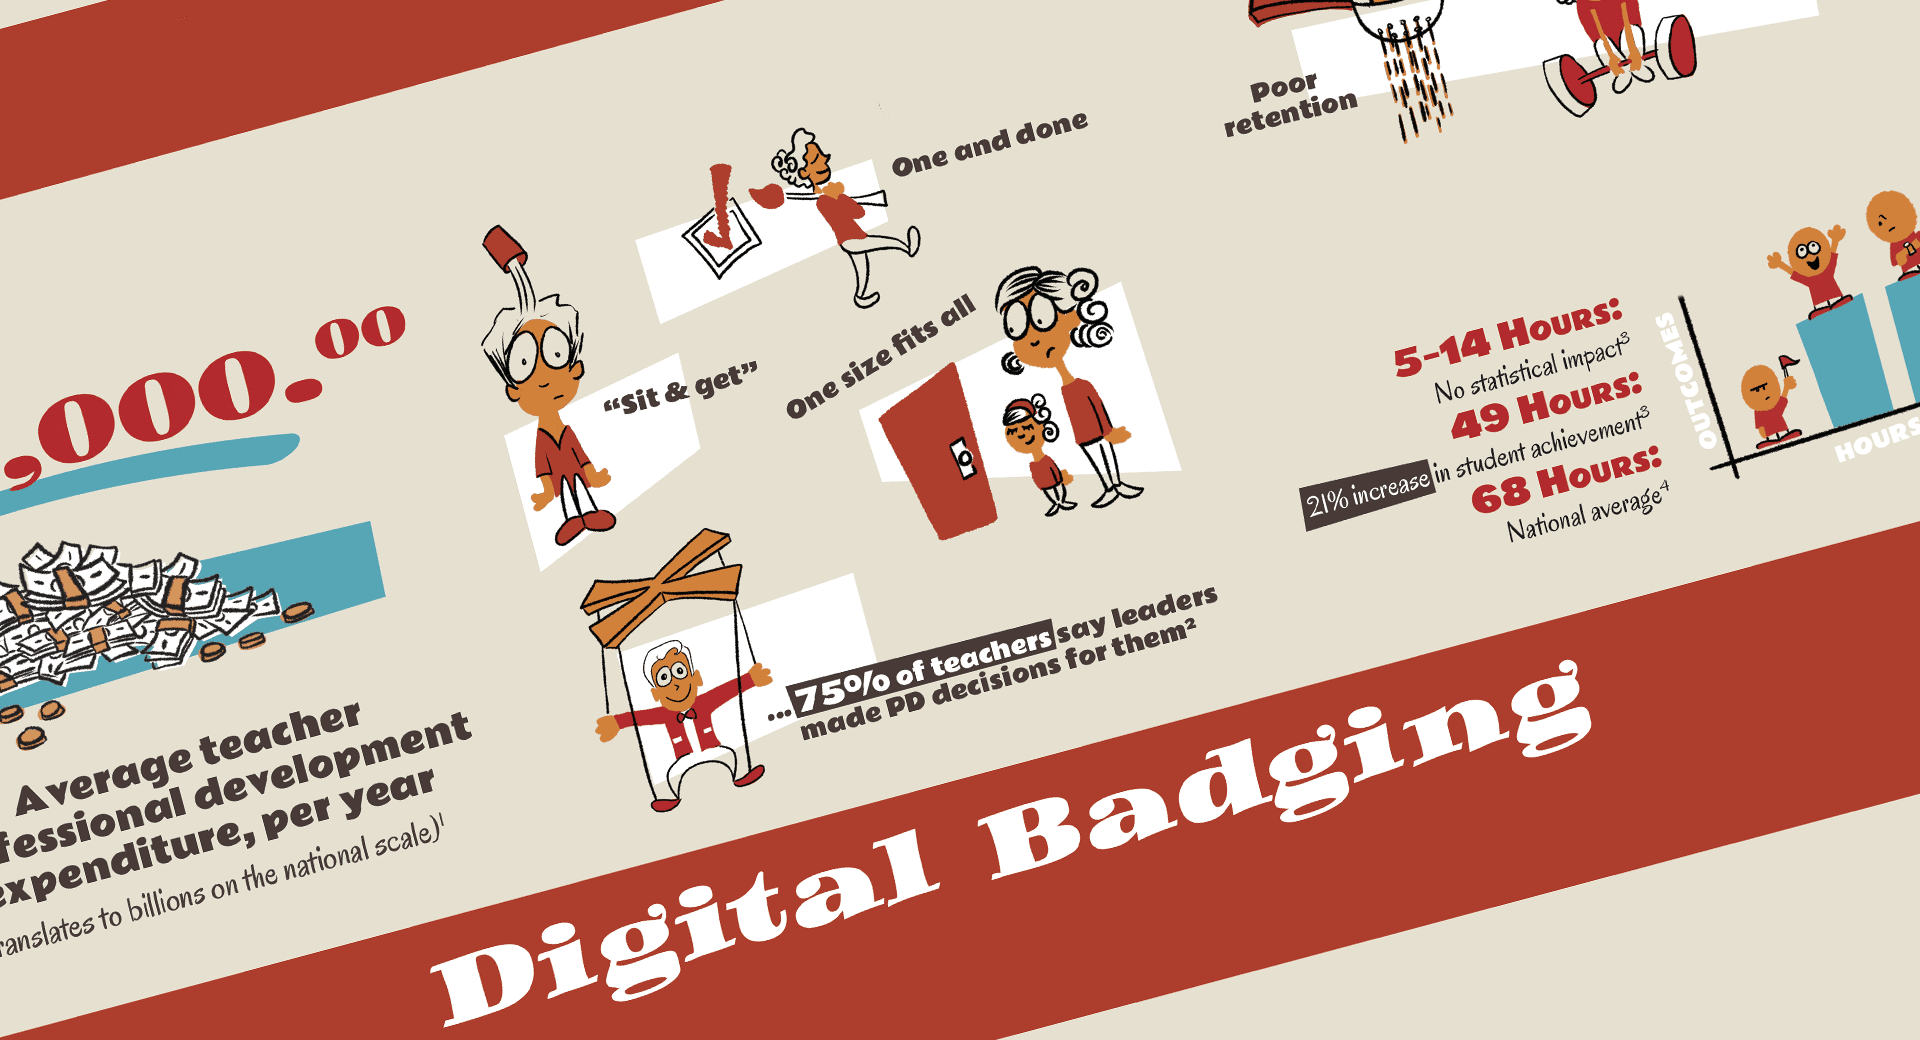 One-Page Pitch: Digital Badging